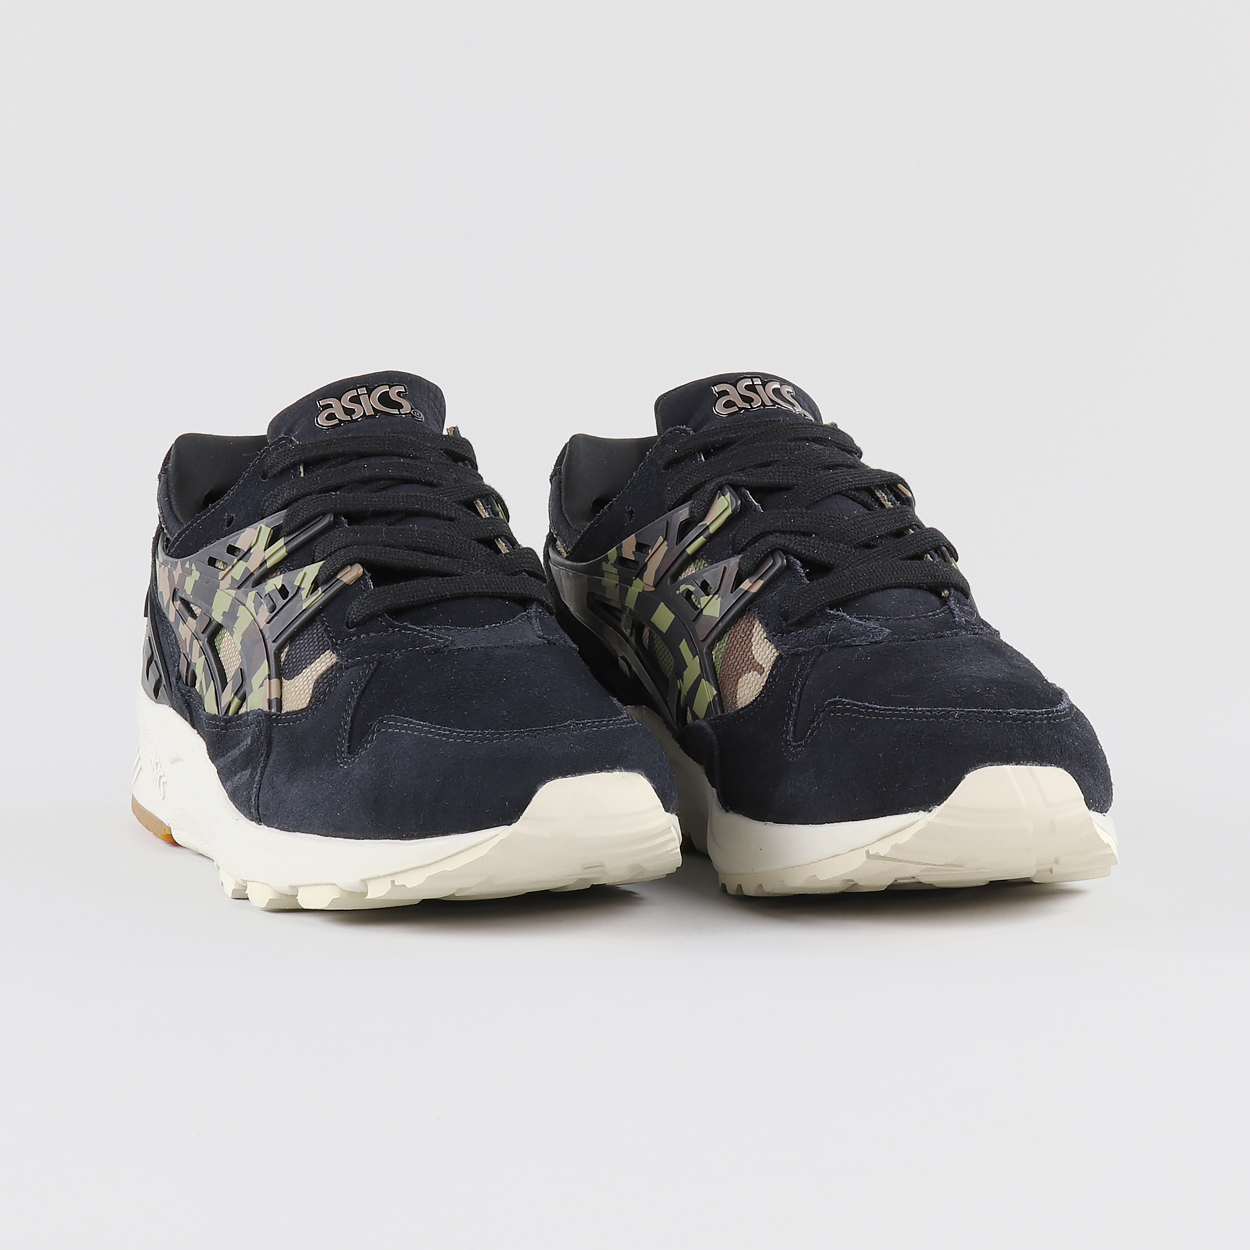 9aafb462af68 The classic Kayano sillhouette has taken a more newfangled approach with  tough suede and canvas uppers combined with rubber detailing and the iconic  Gel ...